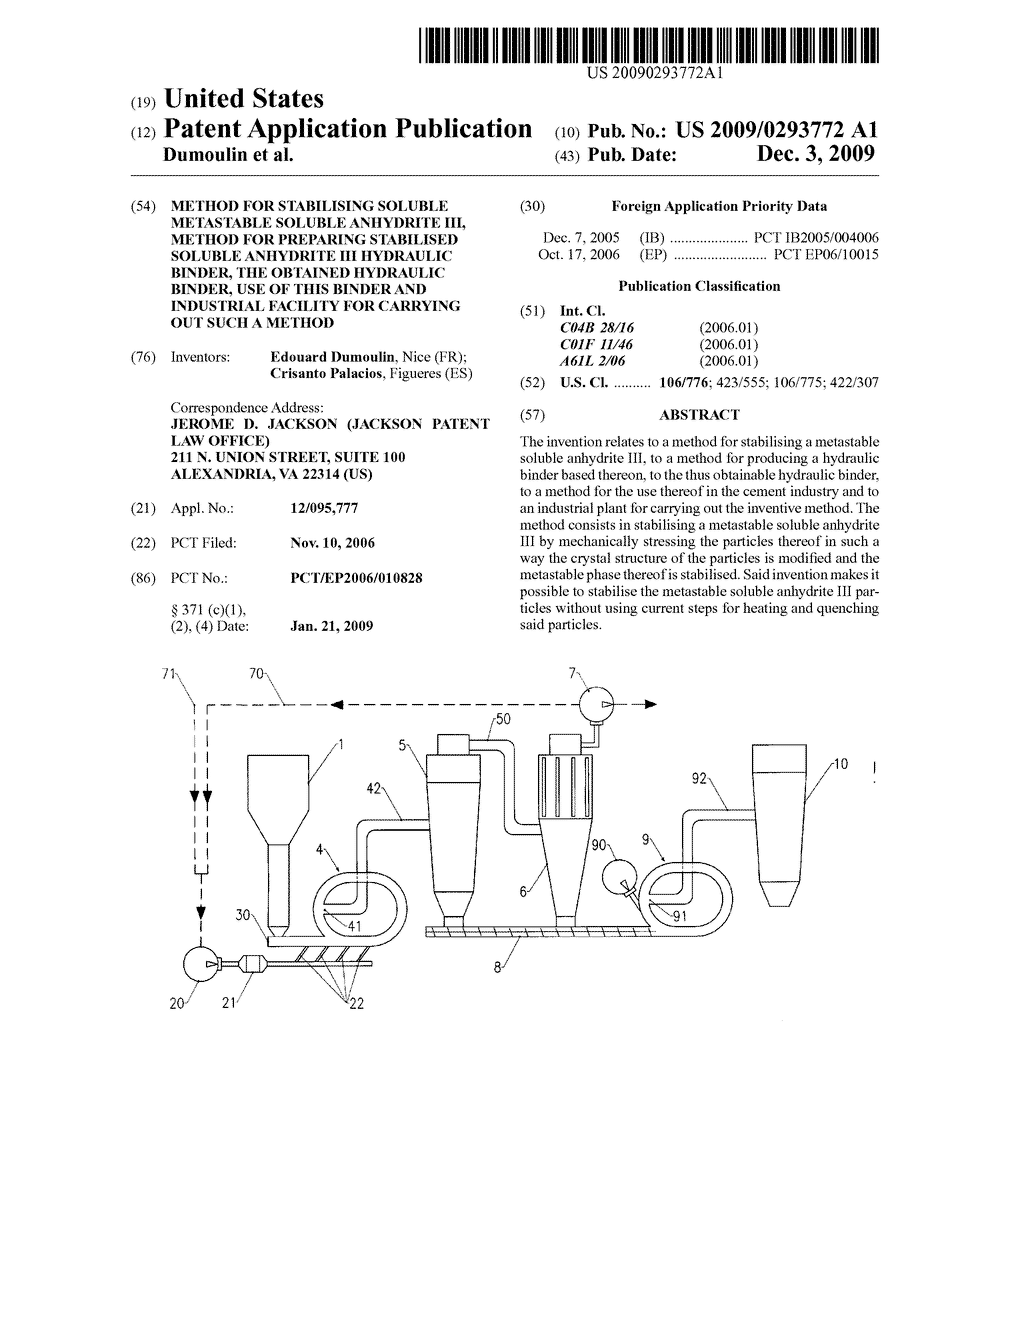 METHOD FOR STABILISING SOLUBLE METASTABLE SOLUBLE ANHYDRITE III, METHOD FOR PREPARING STABILISED SOLUBLE ANHYDRITE III HYDRAULIC BINDER, THE OBTAINED HYDRAULIC BINDER, USE OF THIS BINDER AND INDUSTRIAL FACILITY FOR CARRYING OUT SUCH A METHOD - diagram, schematic, and image 01